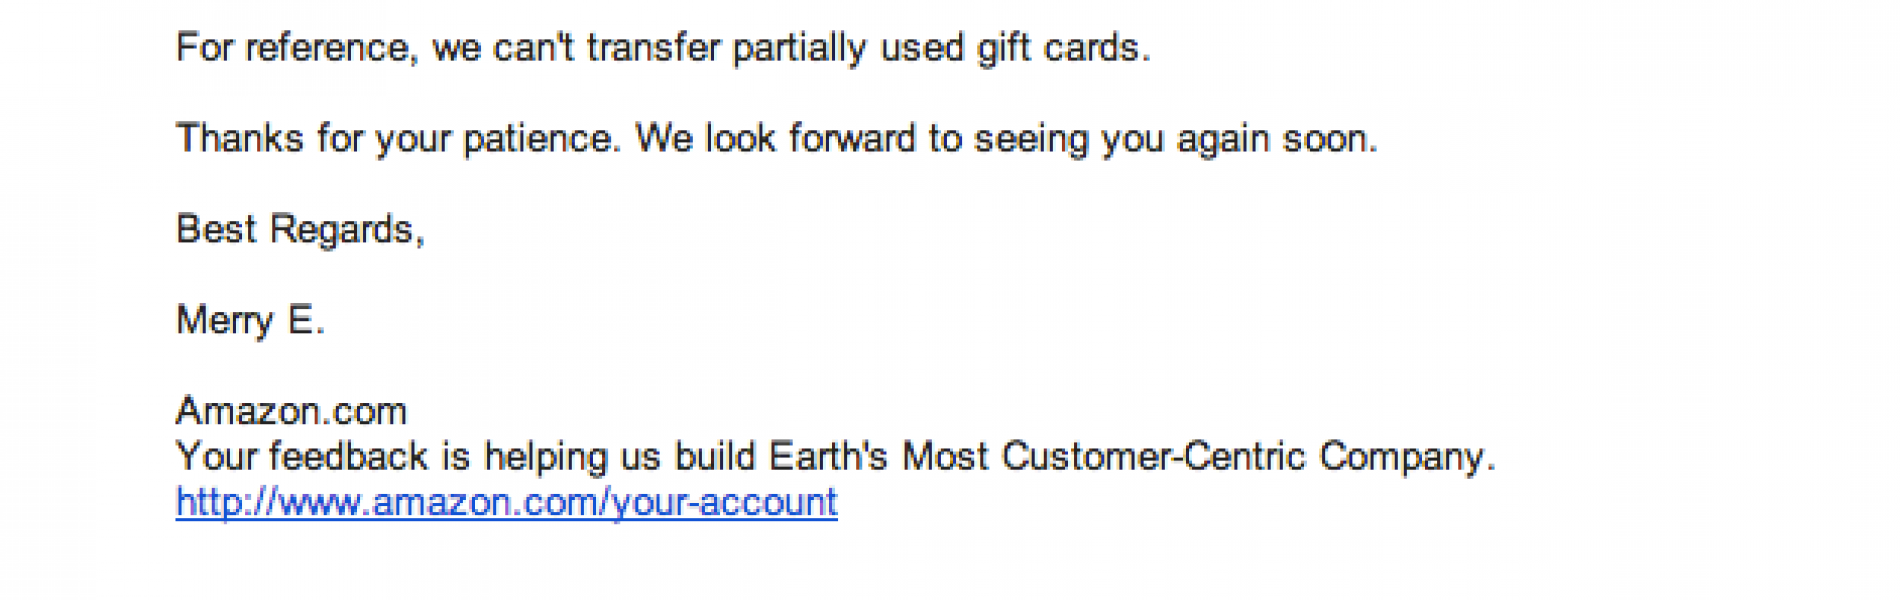 Amazon doesn't care your grandmother is dead, no gift card transfering